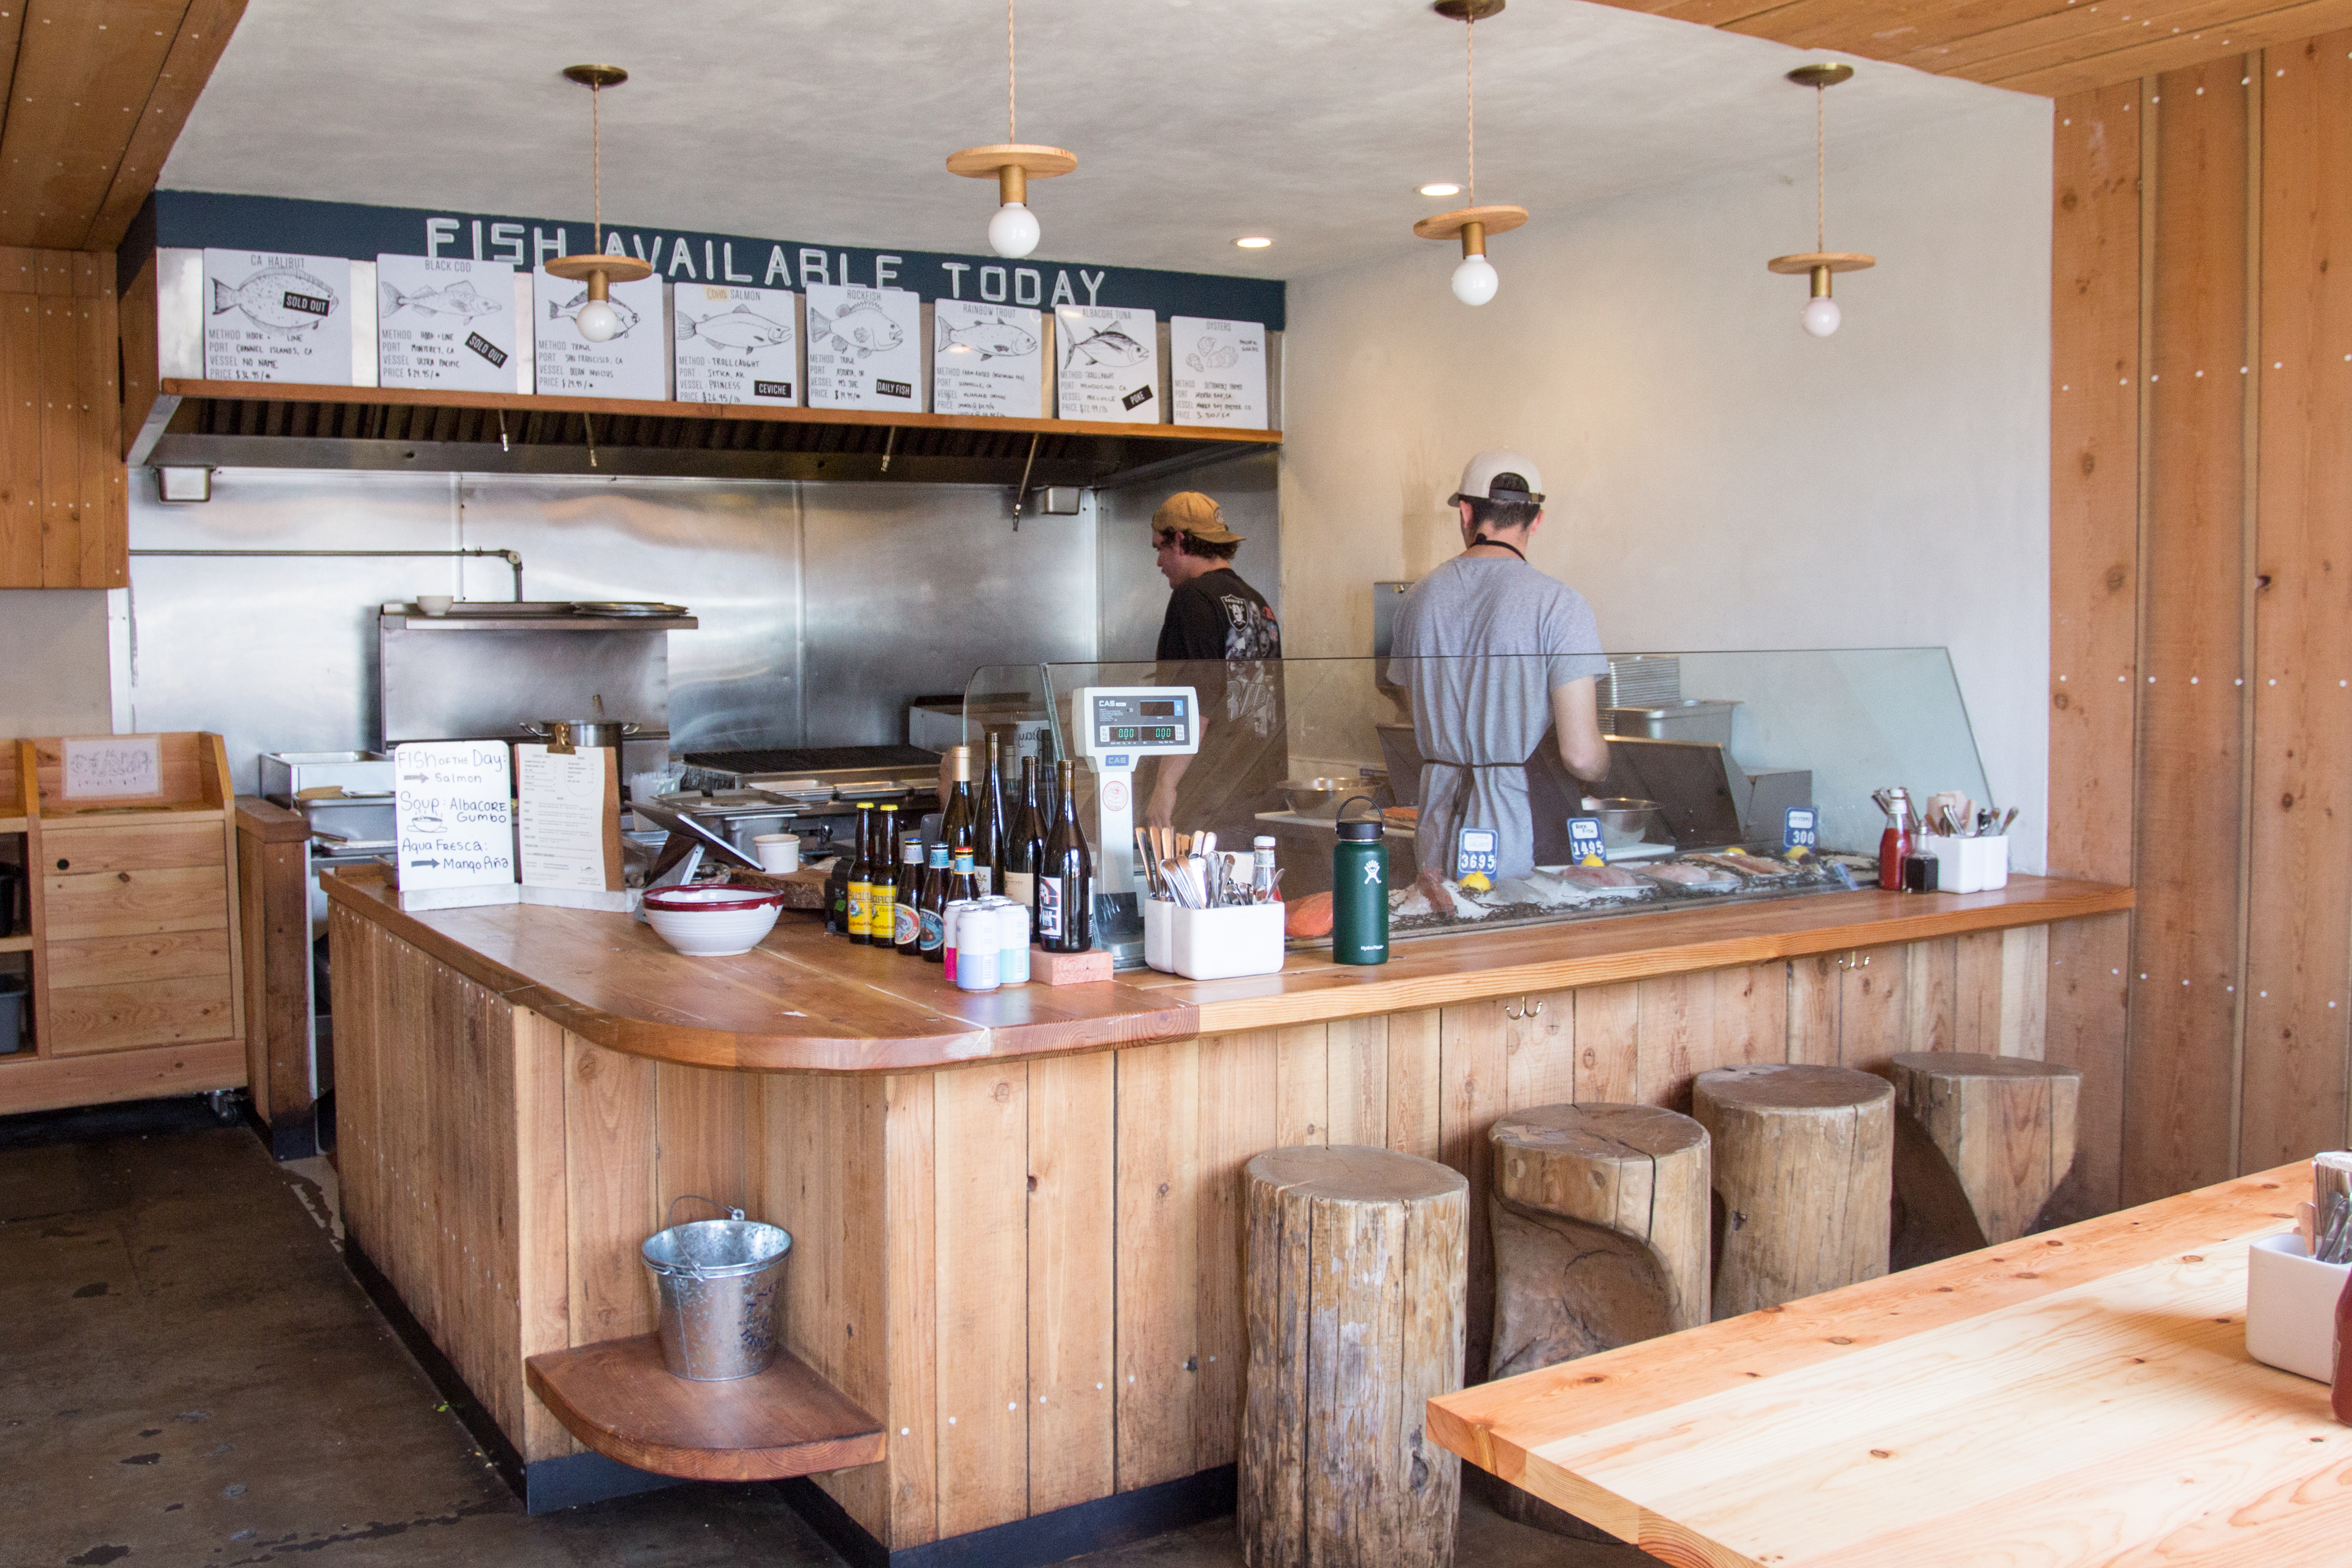 The Best Restaurants In The Sunset - San Francisco - The Infatuation